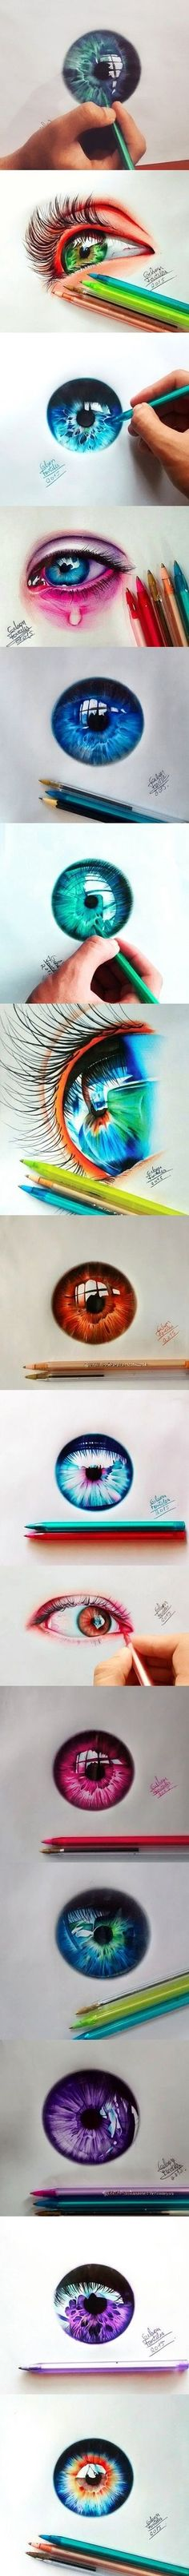 Fascinating Eyes Colors Drawing by Artist Gelson Fonteles Colorful Drawings, Cool Drawings, Pencil Art, Pencil Drawings, Eye Art, Art Techniques, Painting & Drawing, Drawing Eyes, Ball Drawing